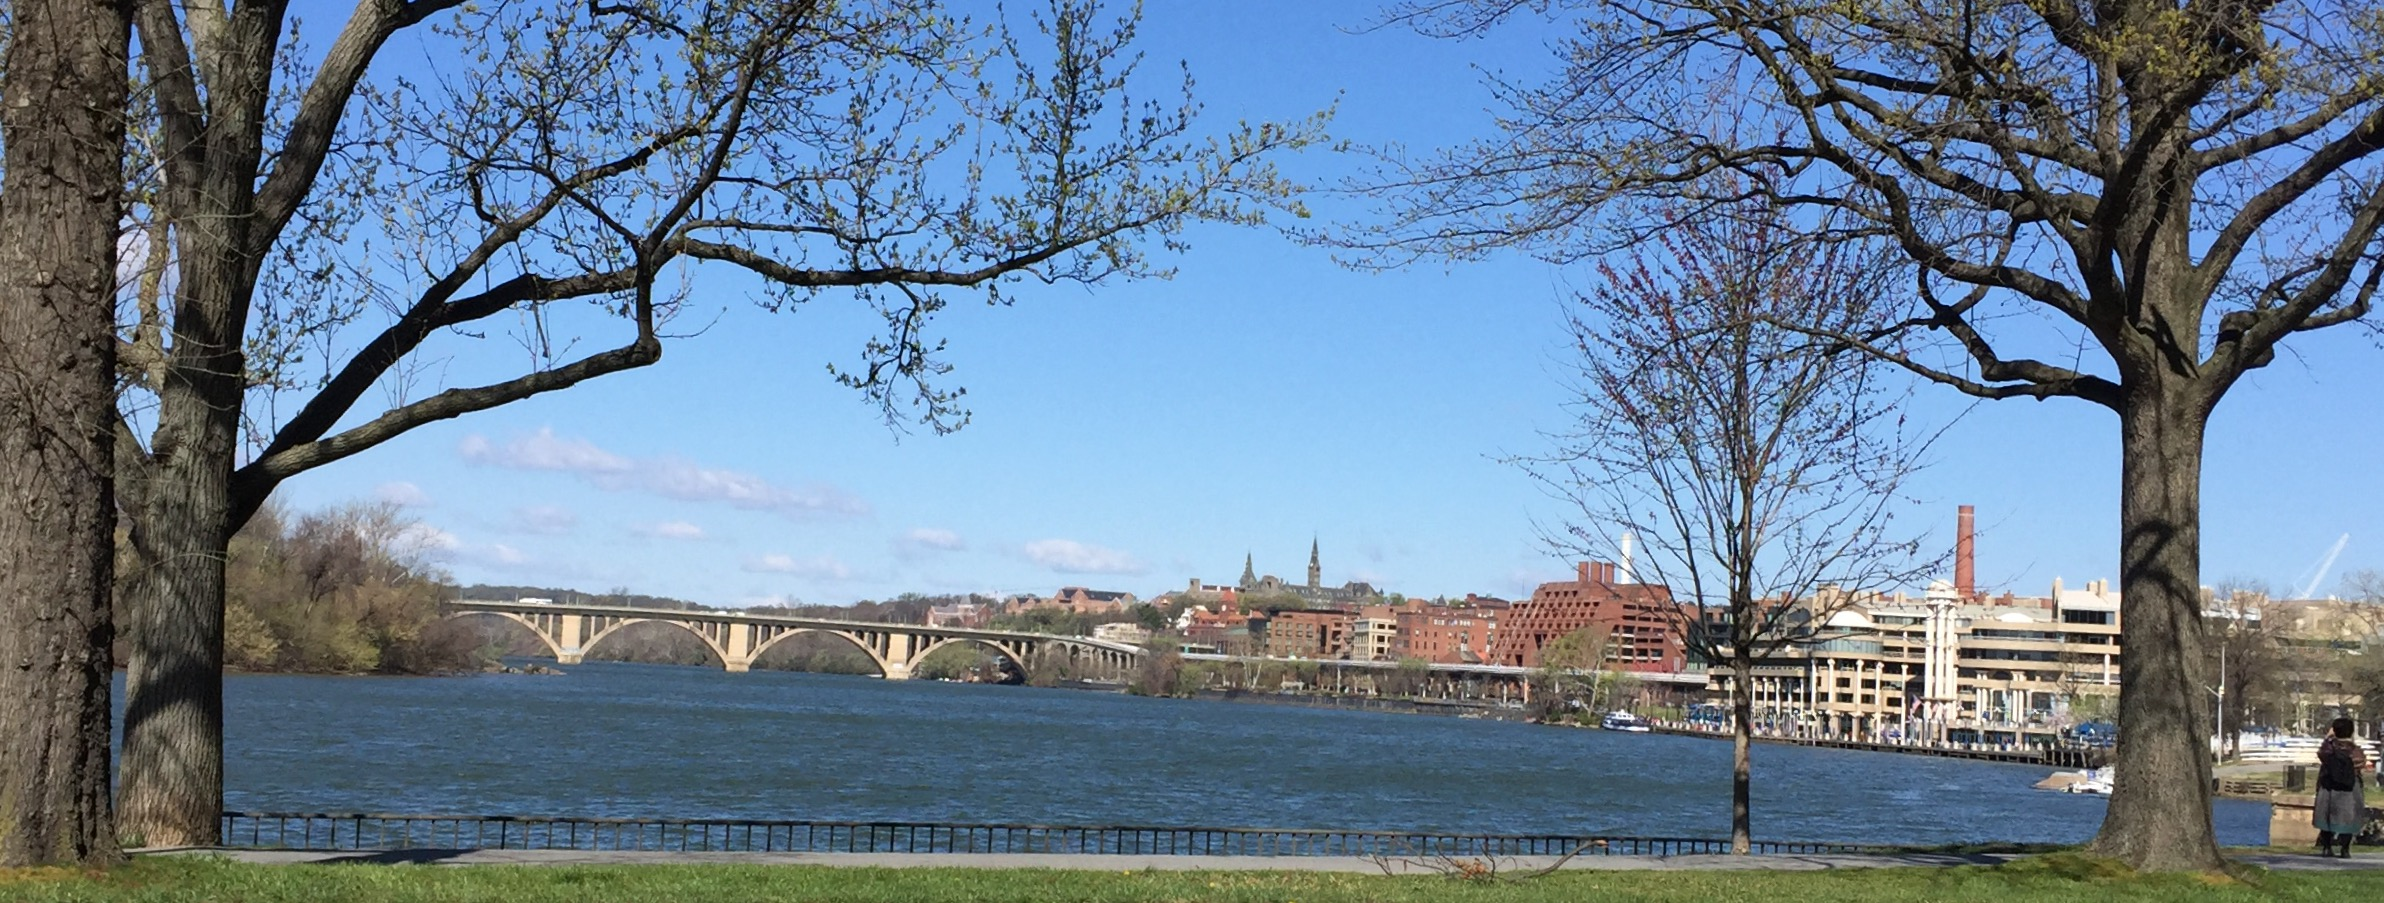 Report shows Potomac River is on its way to recovery